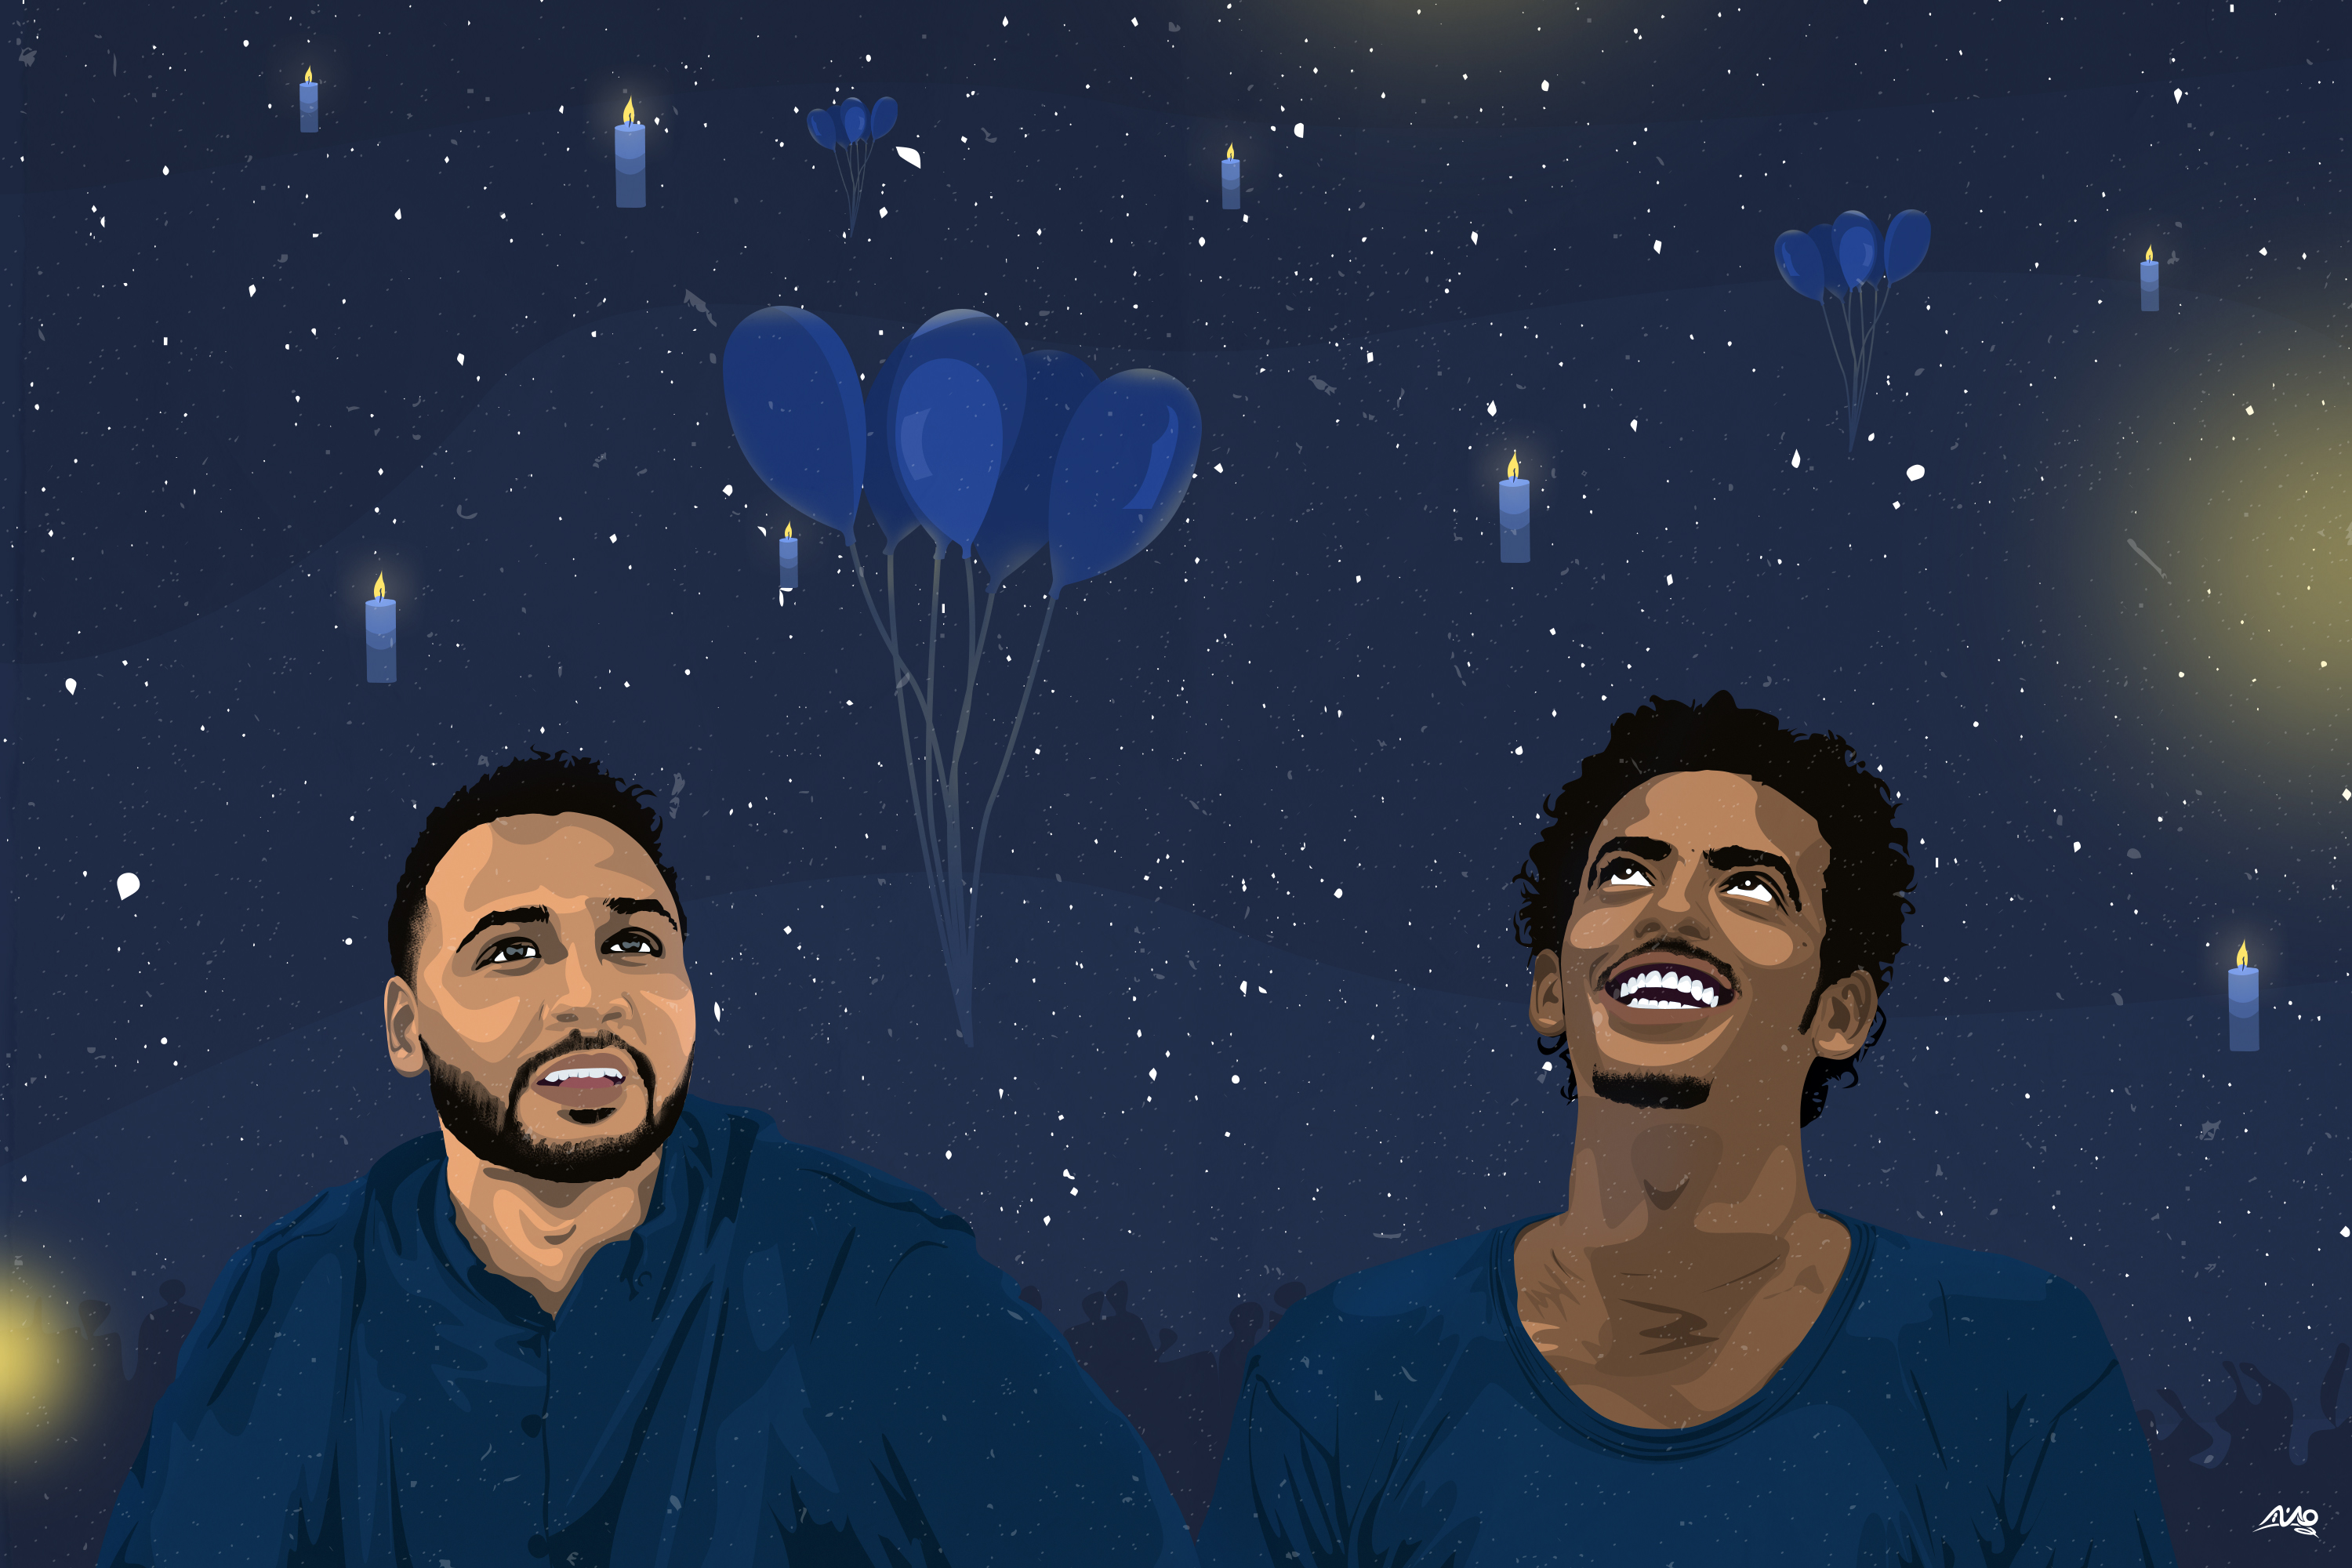 Blue Martyrs - smiling Mohamed Mattar and Abdelsalam Kisha surrounded by balloons and stars